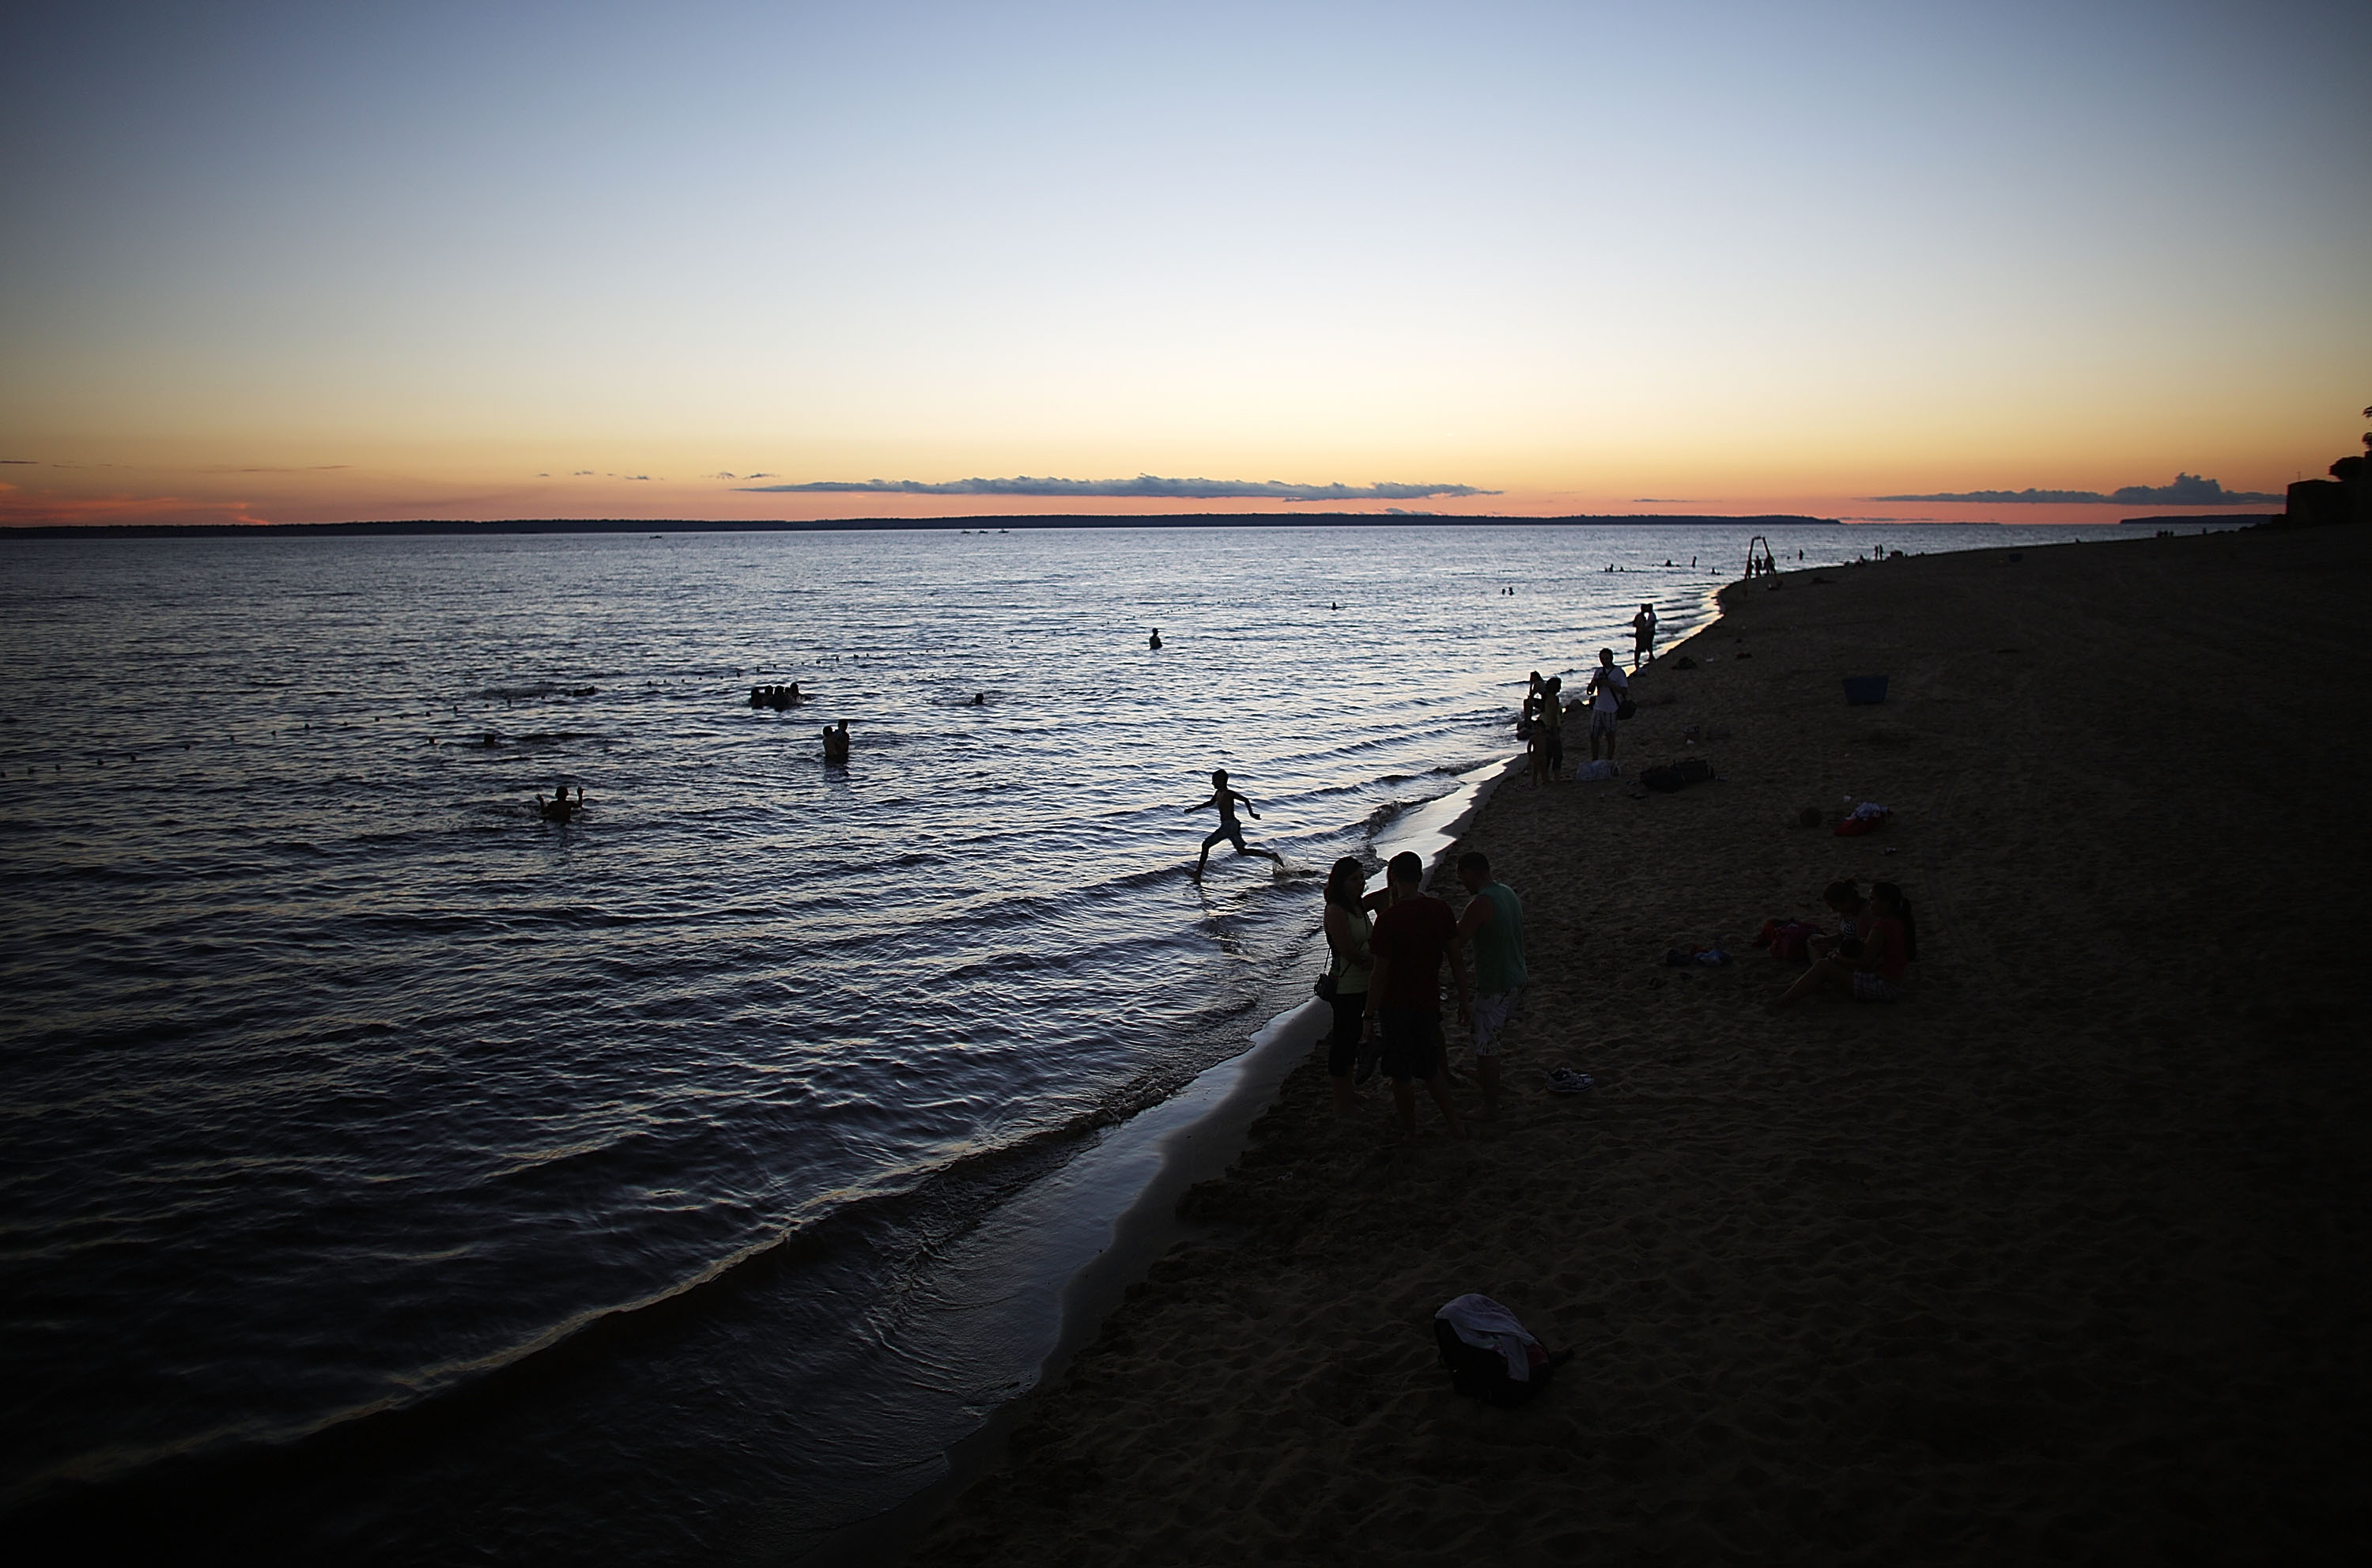 People gather at Ponta Negra beach on Rio Negro, a branch of the Amazon River, on November 23, 2013 in Manaus, Brazil.